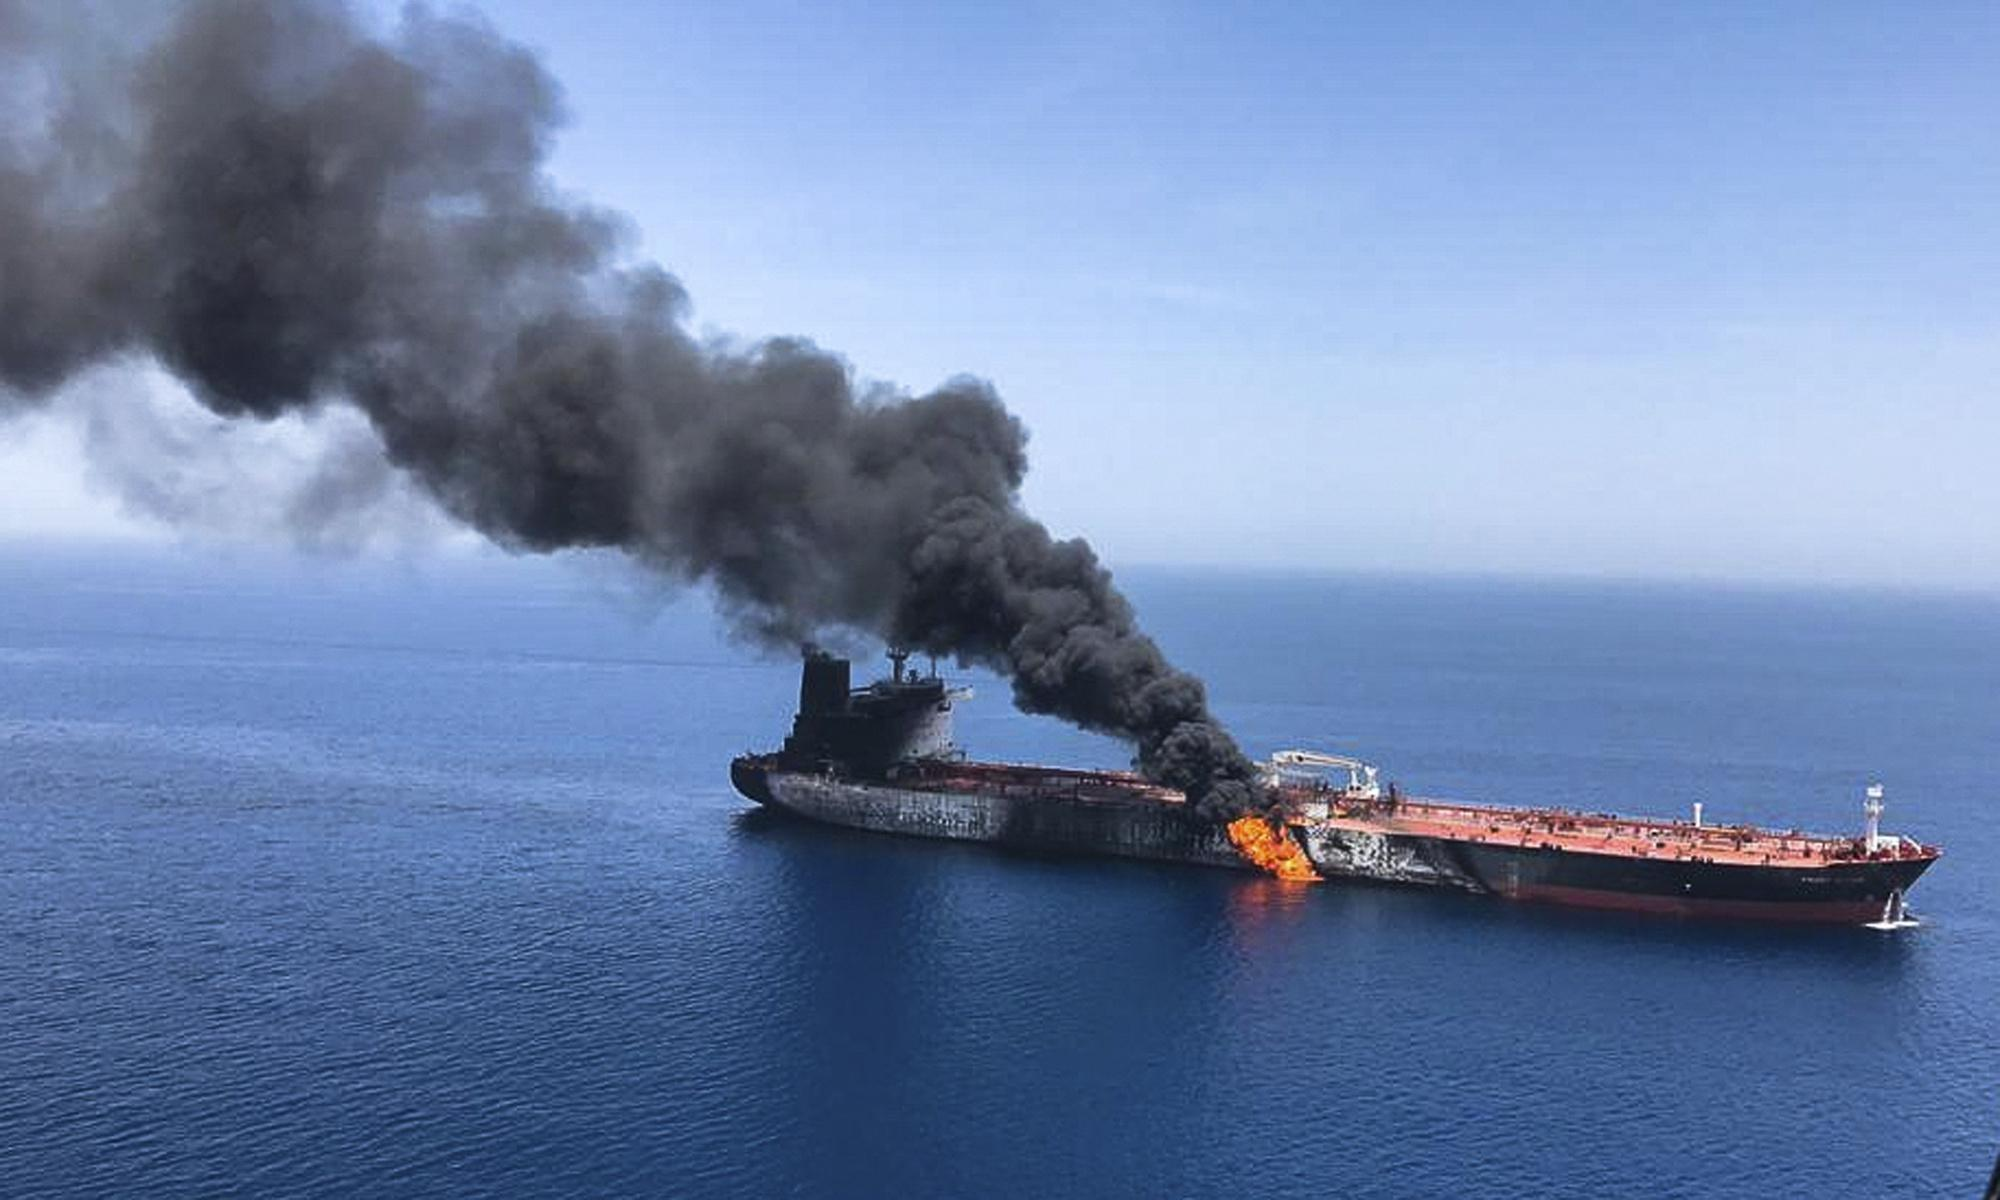 A visual guide to the Gulf tanker attacks